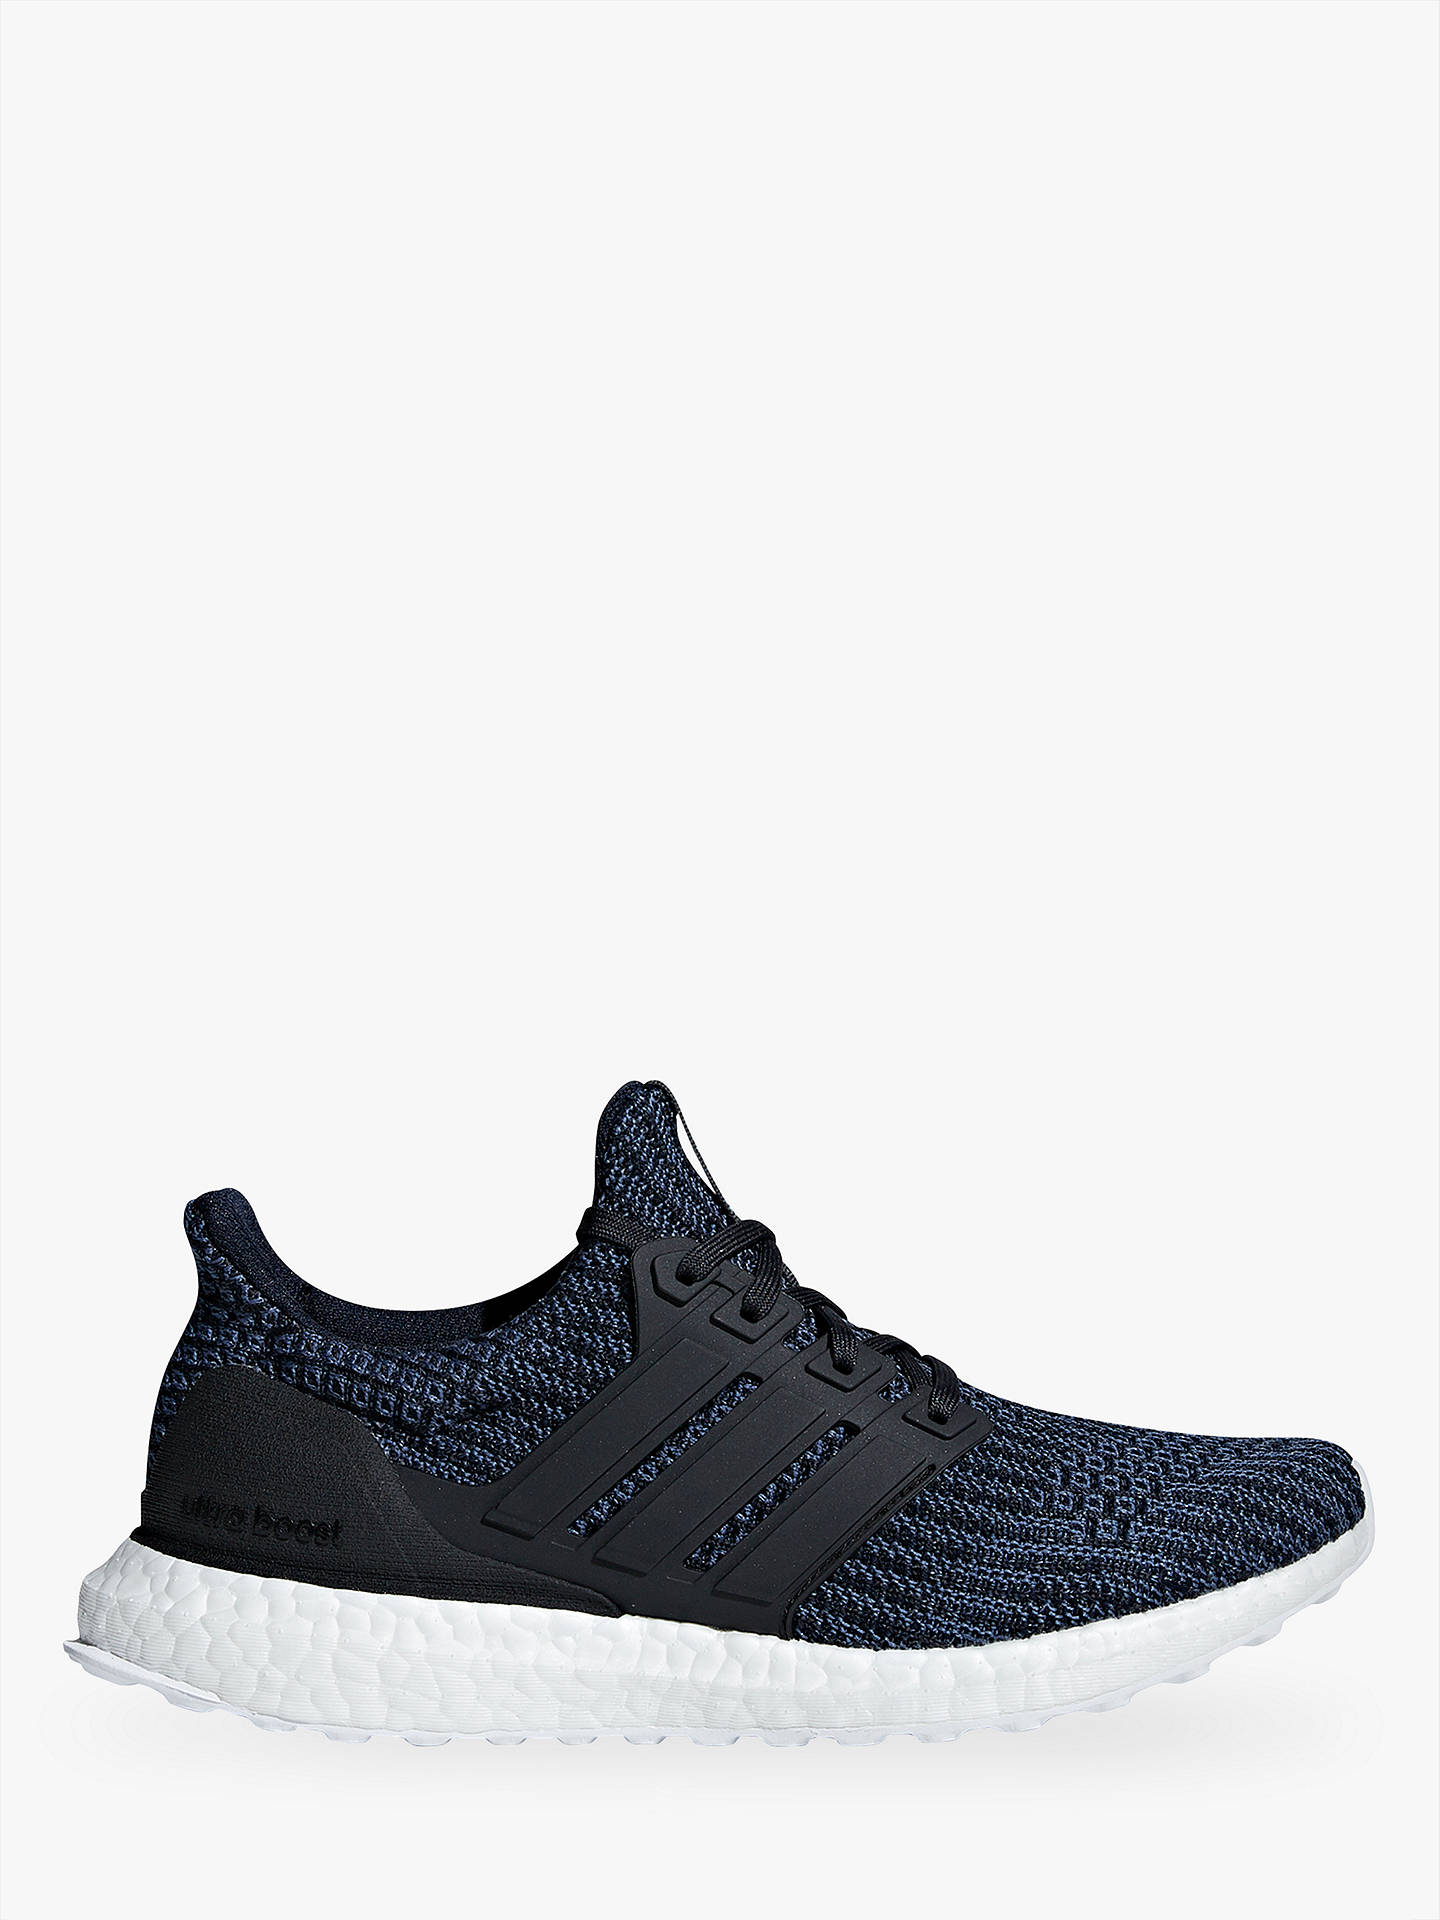 Buyadidas UltraBOOST Women's Running Shoes, Tech Ink/Carbon/Blue Spirit, 4 Online at johnlewis.com